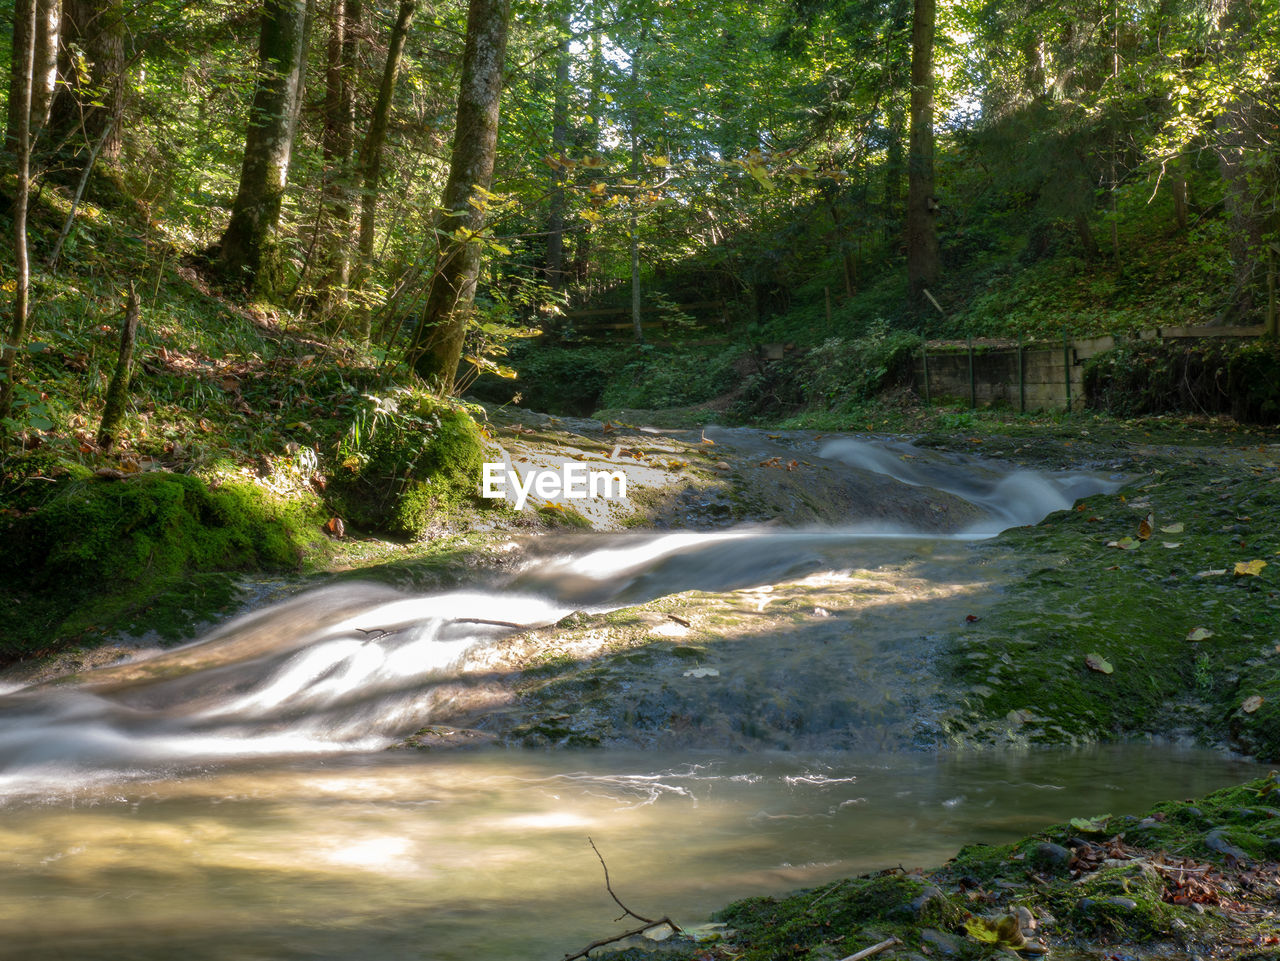 tree, forest, plant, water, land, beauty in nature, motion, nature, no people, scenics - nature, flowing water, flowing, growth, blurred motion, long exposure, day, waterfall, environment, outdoors, woodland, power in nature